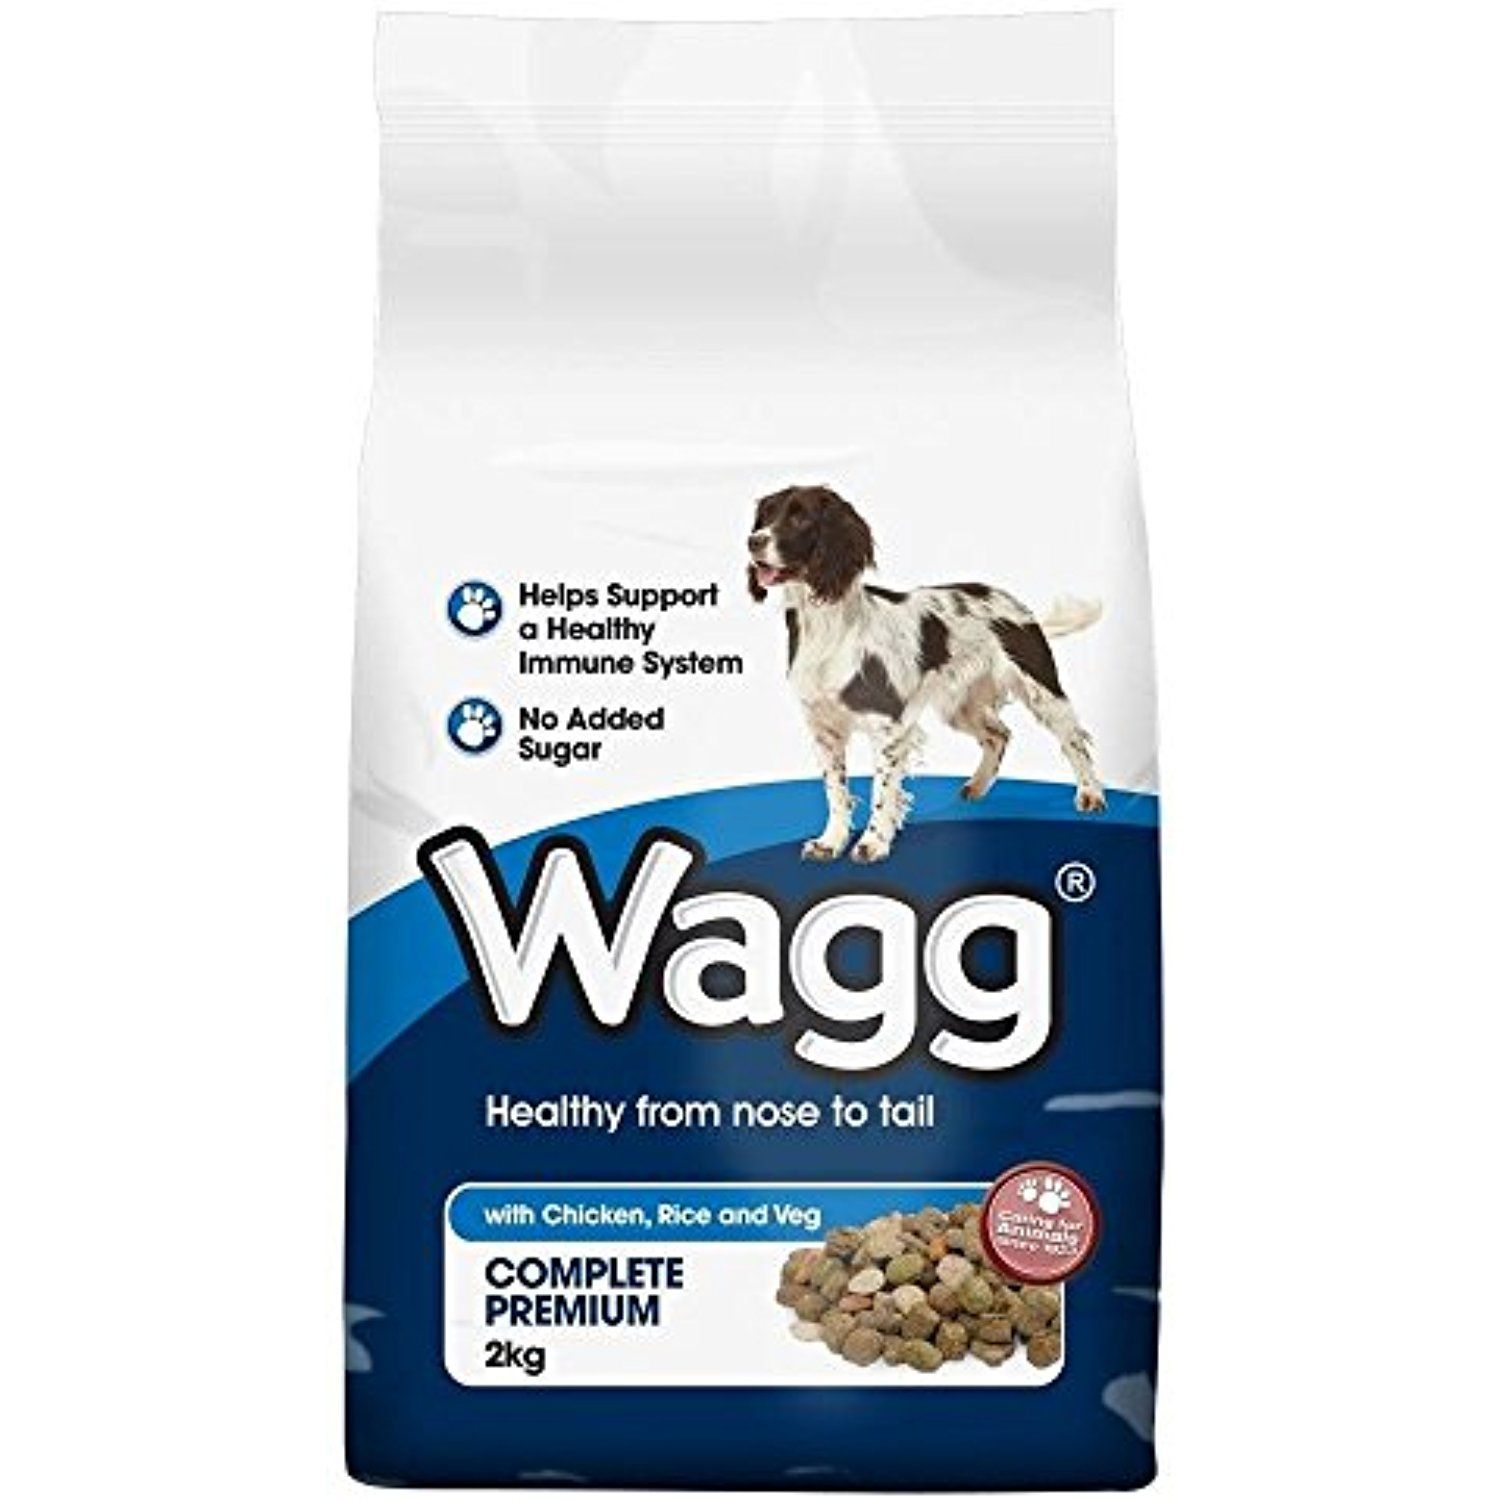 Wagg Complete Chicken Rice Vegetable Dog Food 2kg To Check